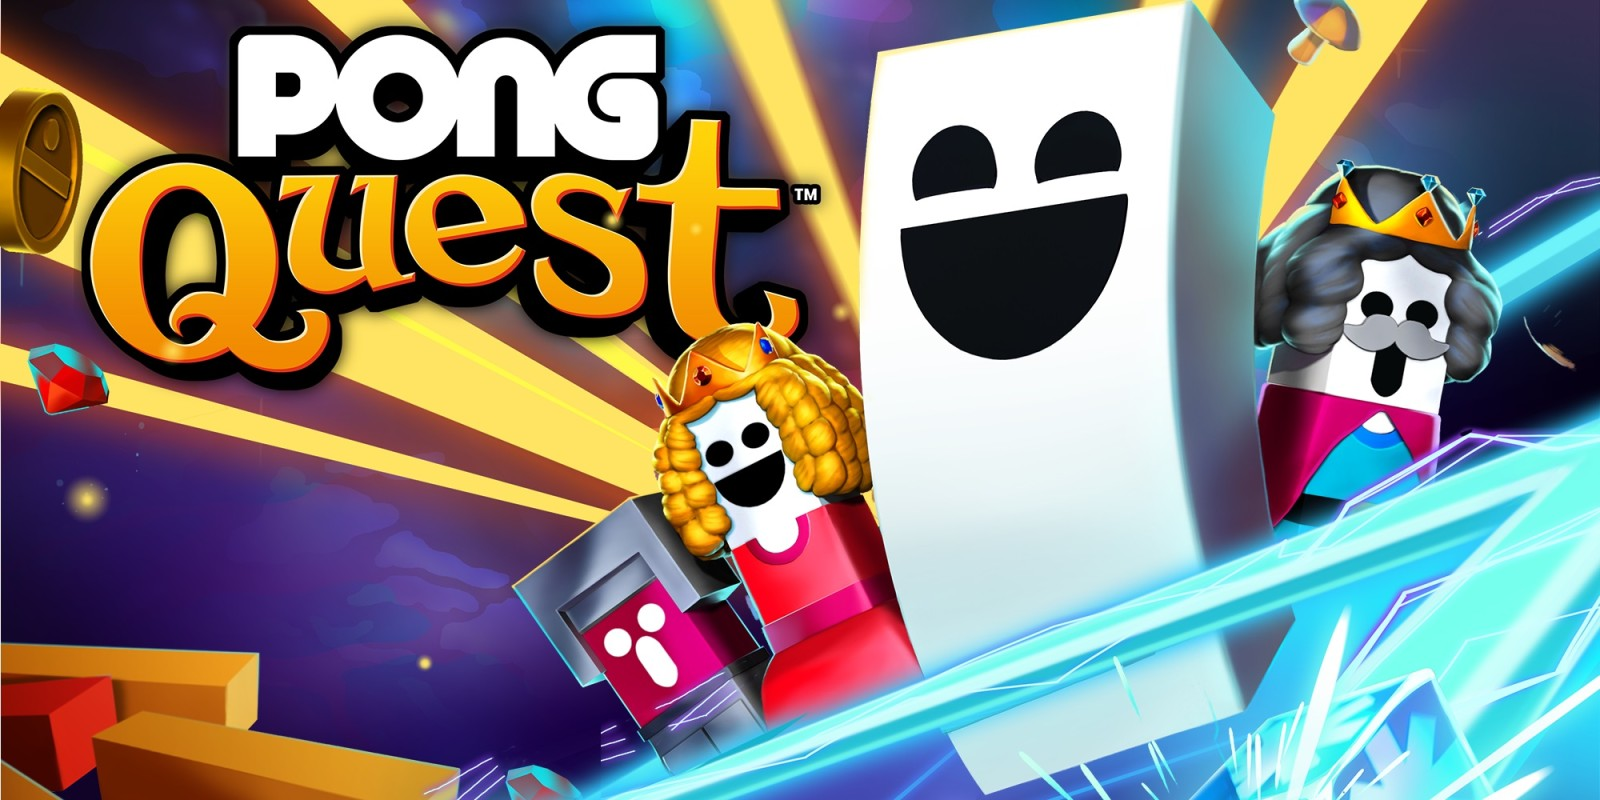 PONG Quest Nintendo Switch Review